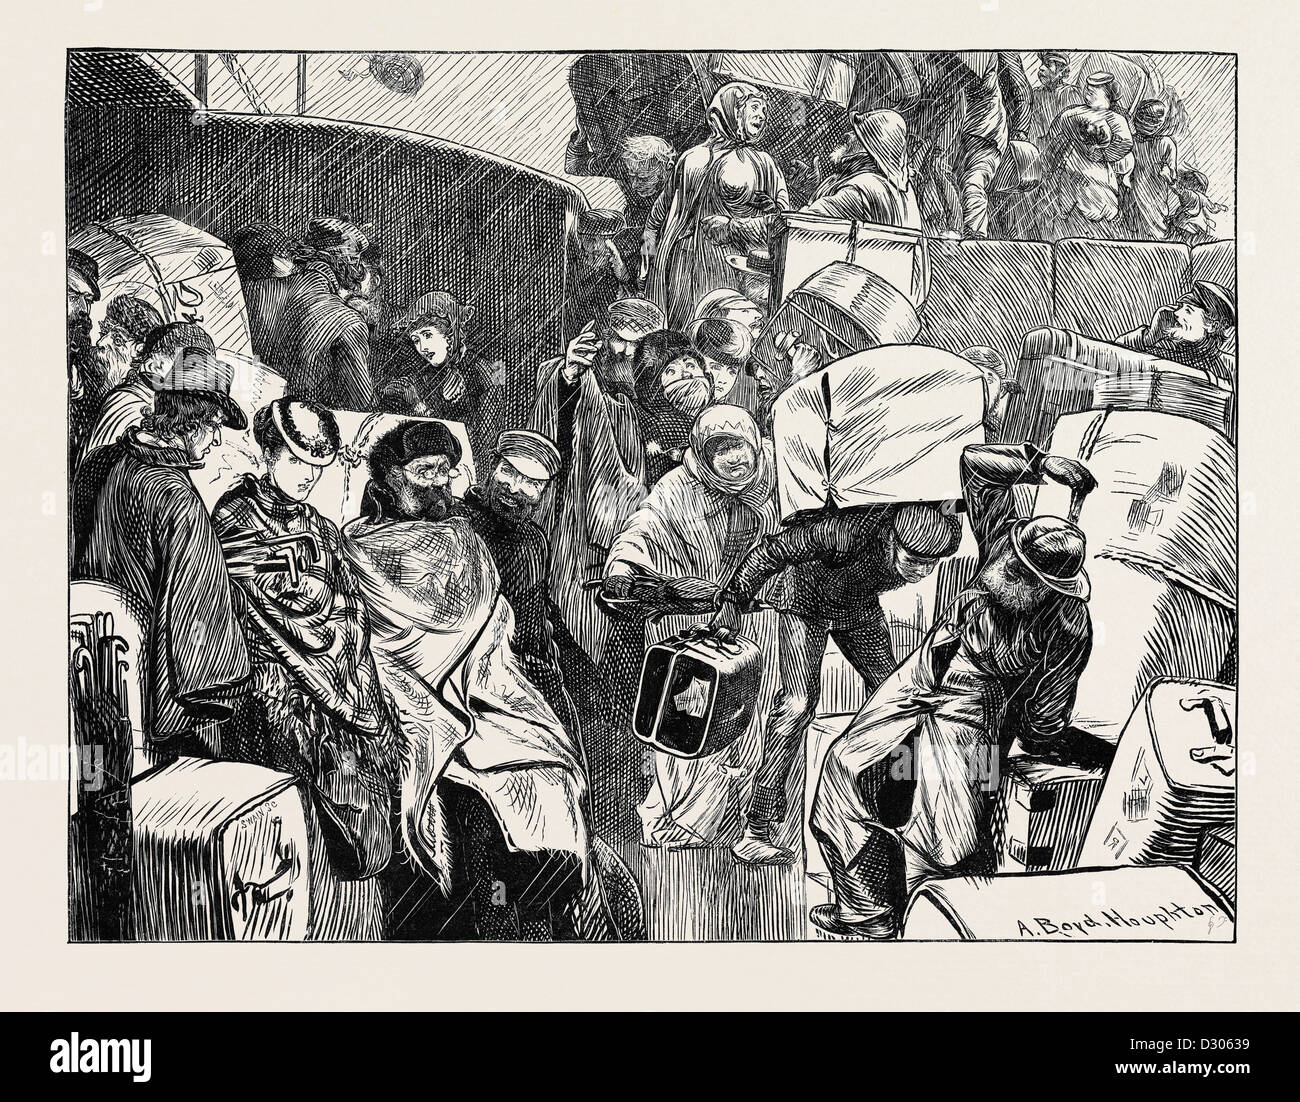 THE EMBARCATION ON A SHIP BOUND FOR AMERICA, 1870 - Stock Image